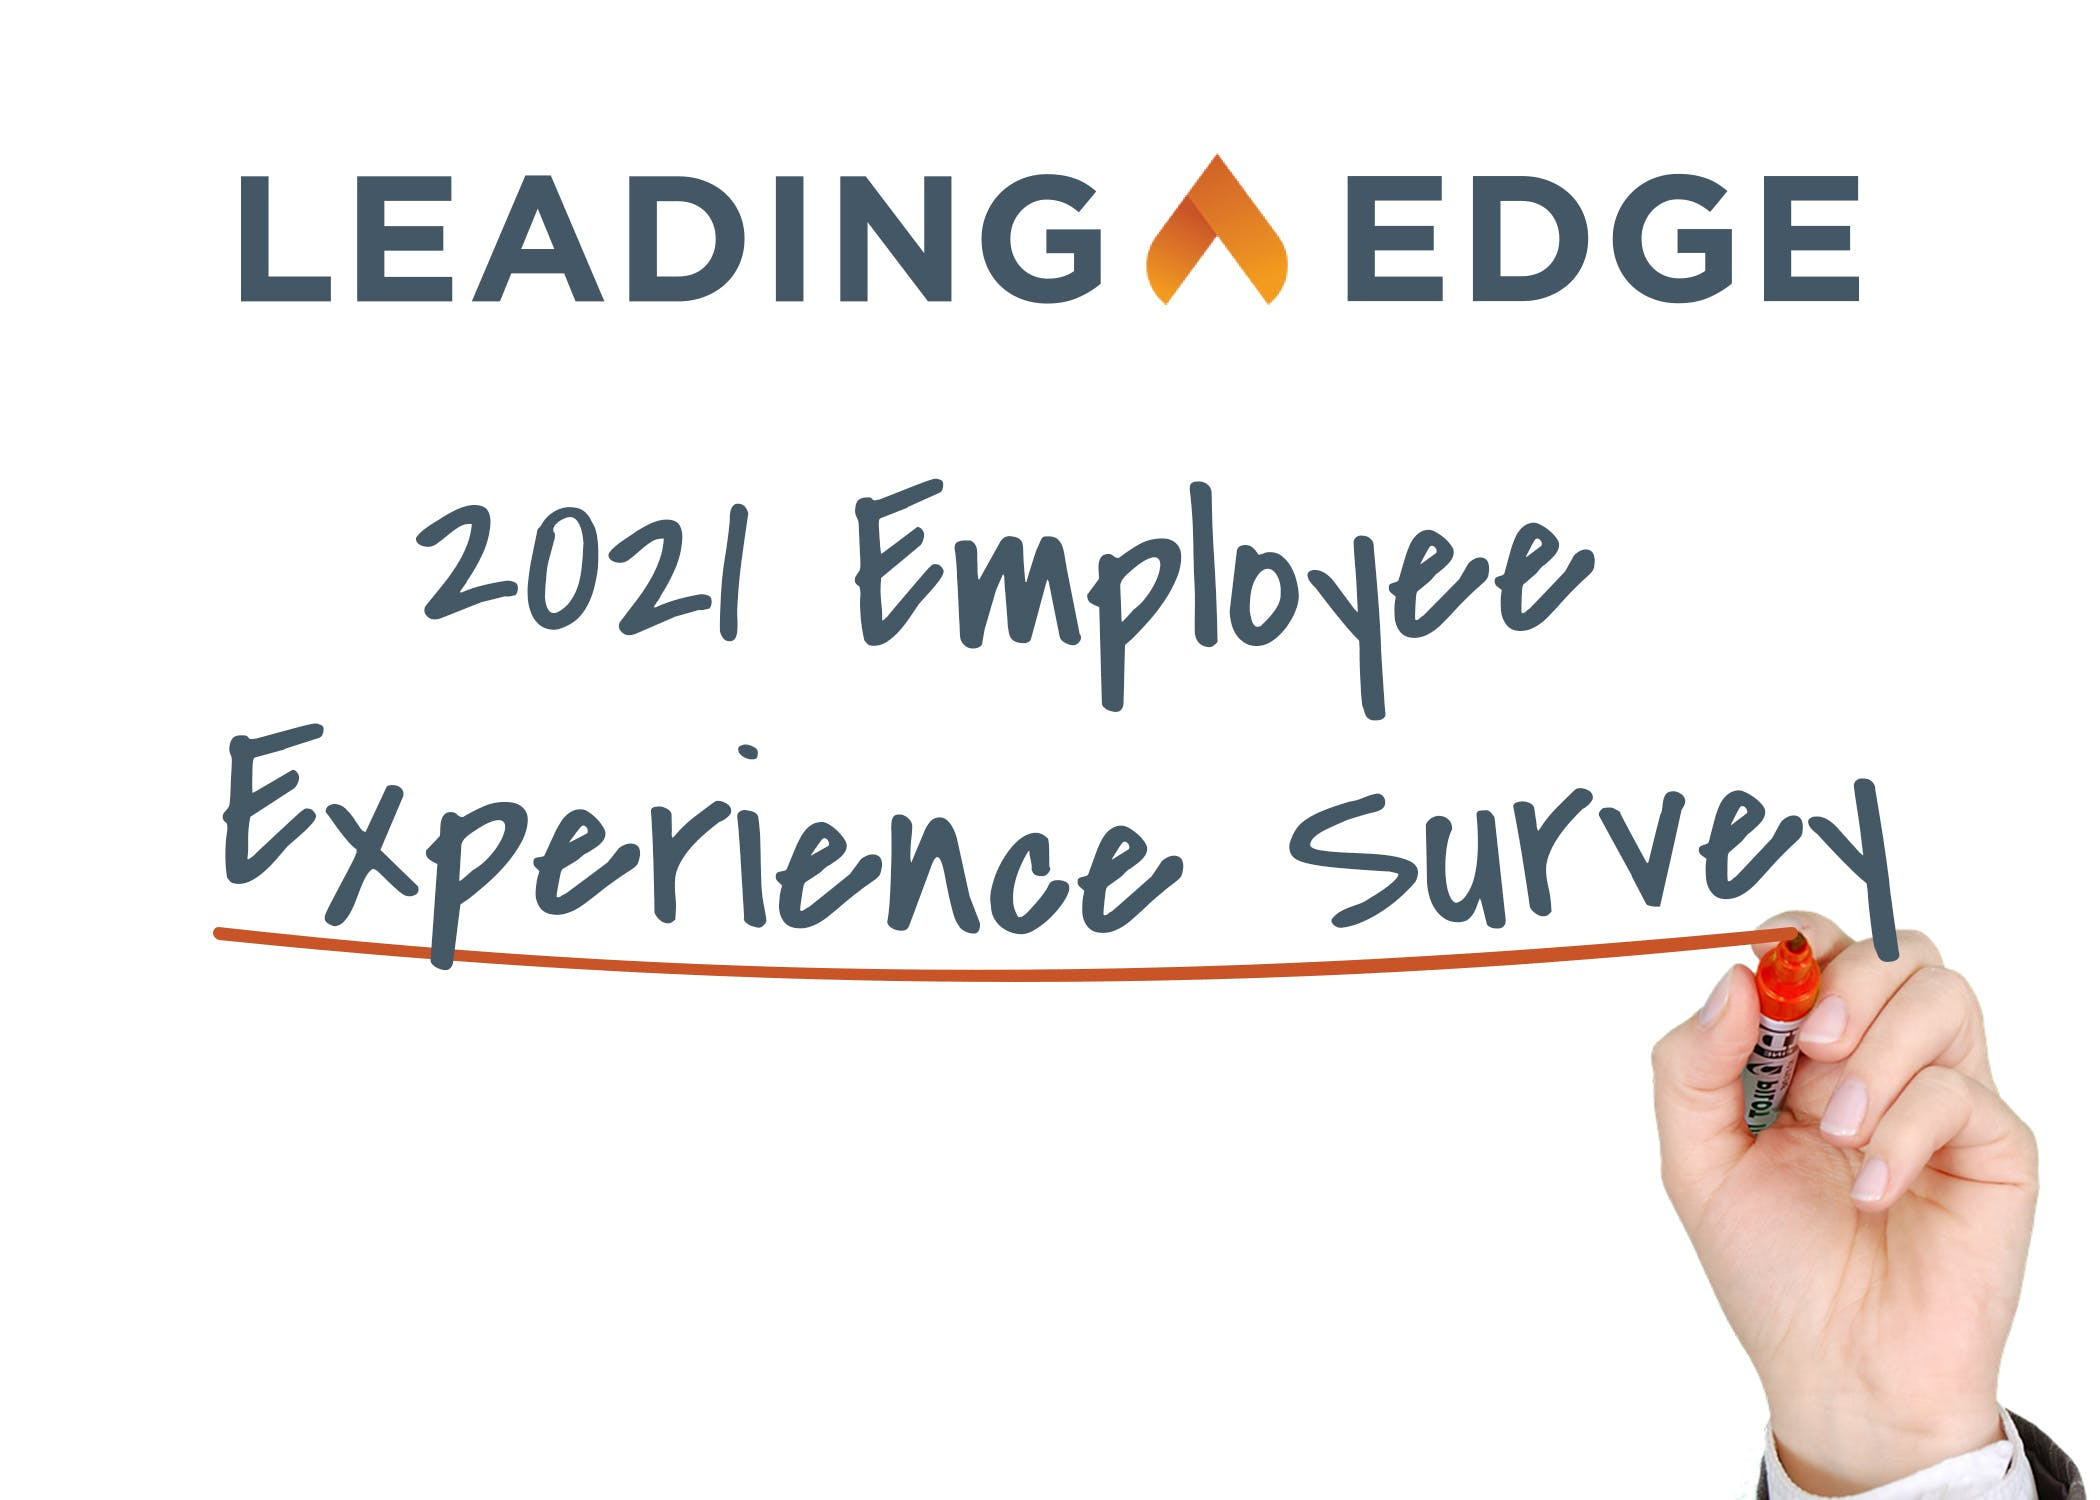 Employee Experience Survey 2021